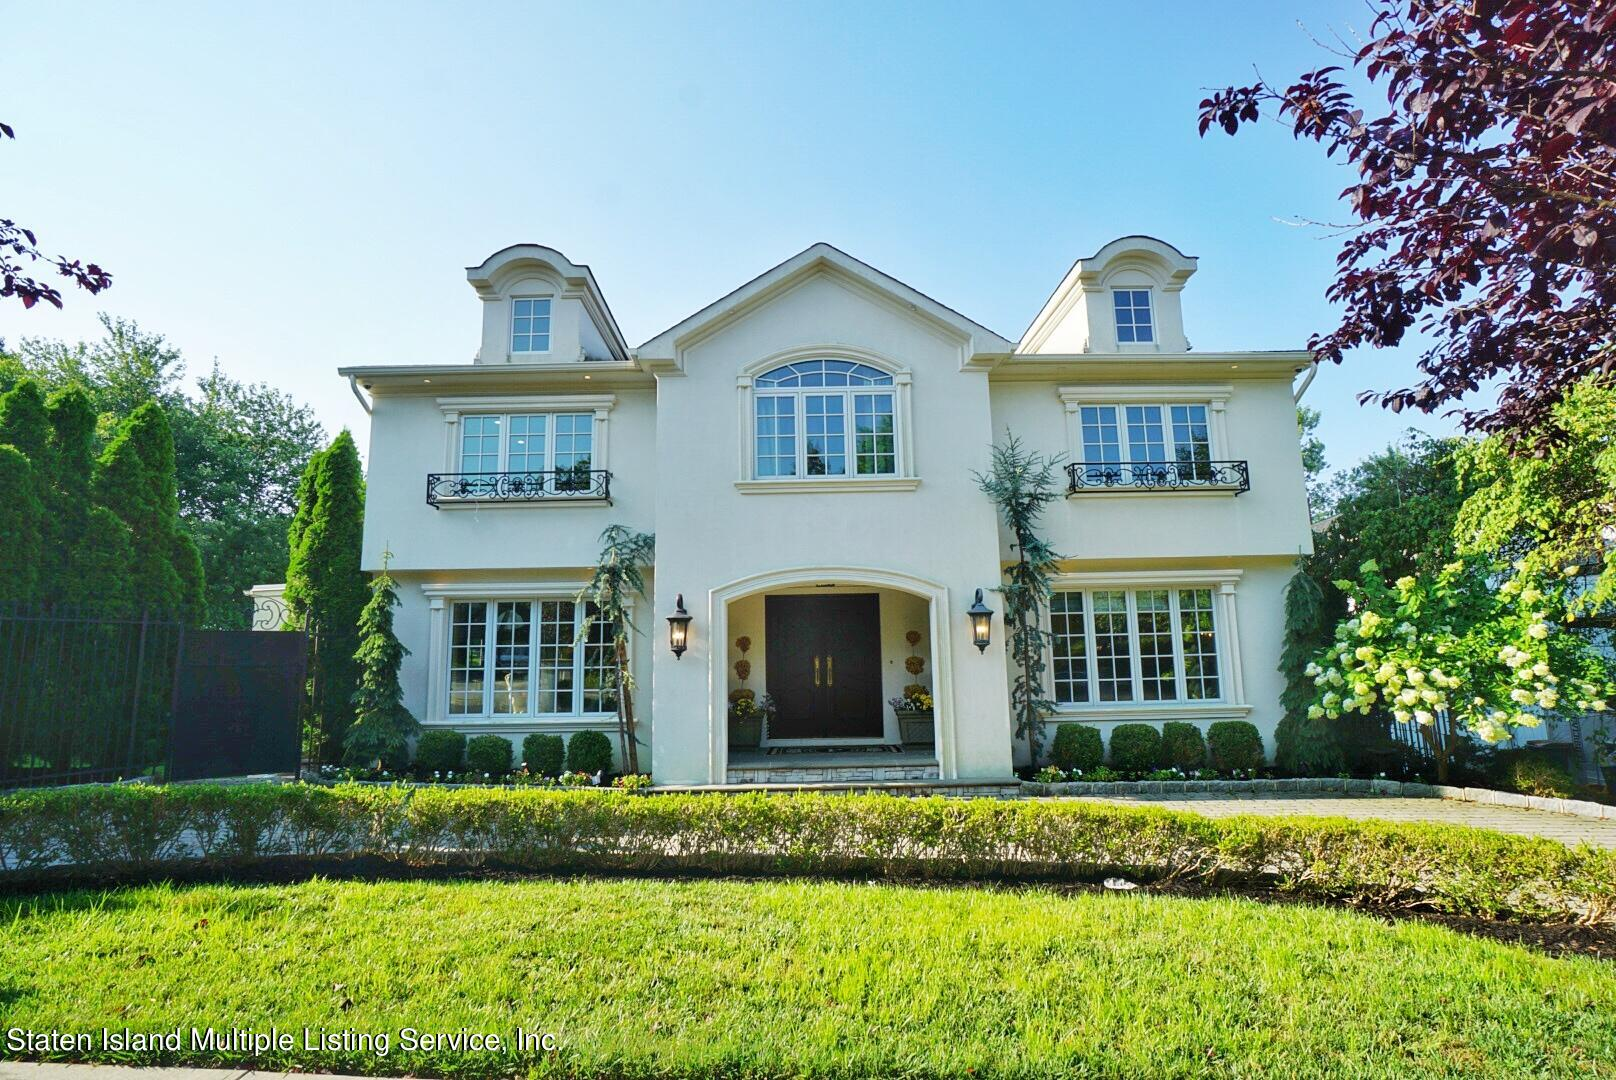 Single Family - Detached in Lower Todt Hill - 116 Fine Blvd   Staten Island, NY 10314